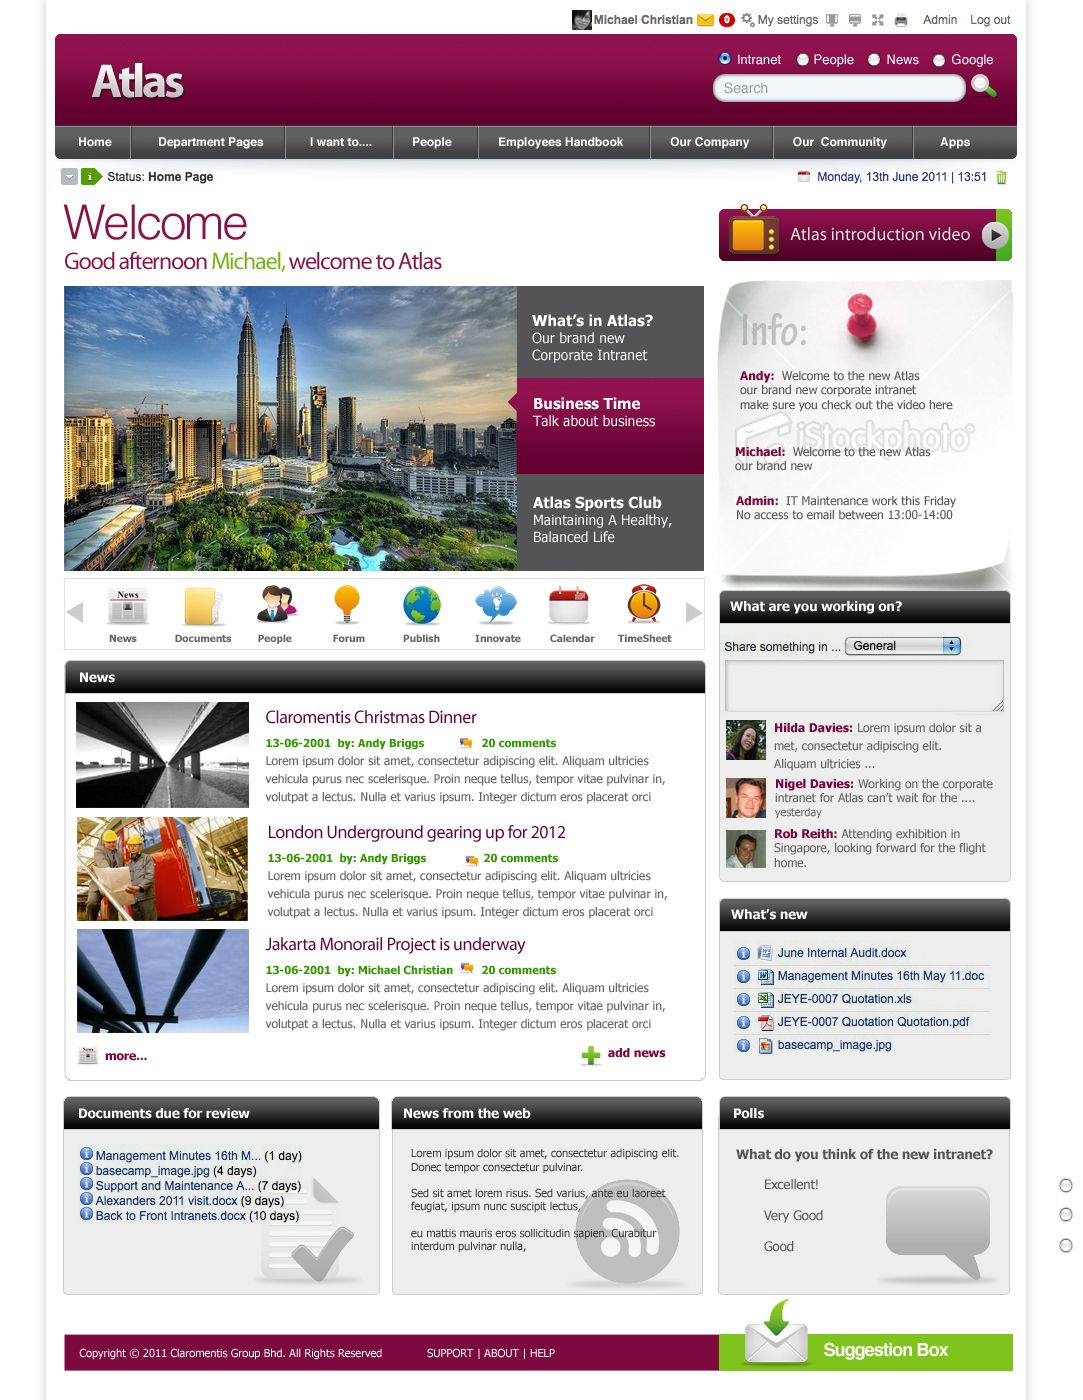 intranet design - Intranet Design Ideas